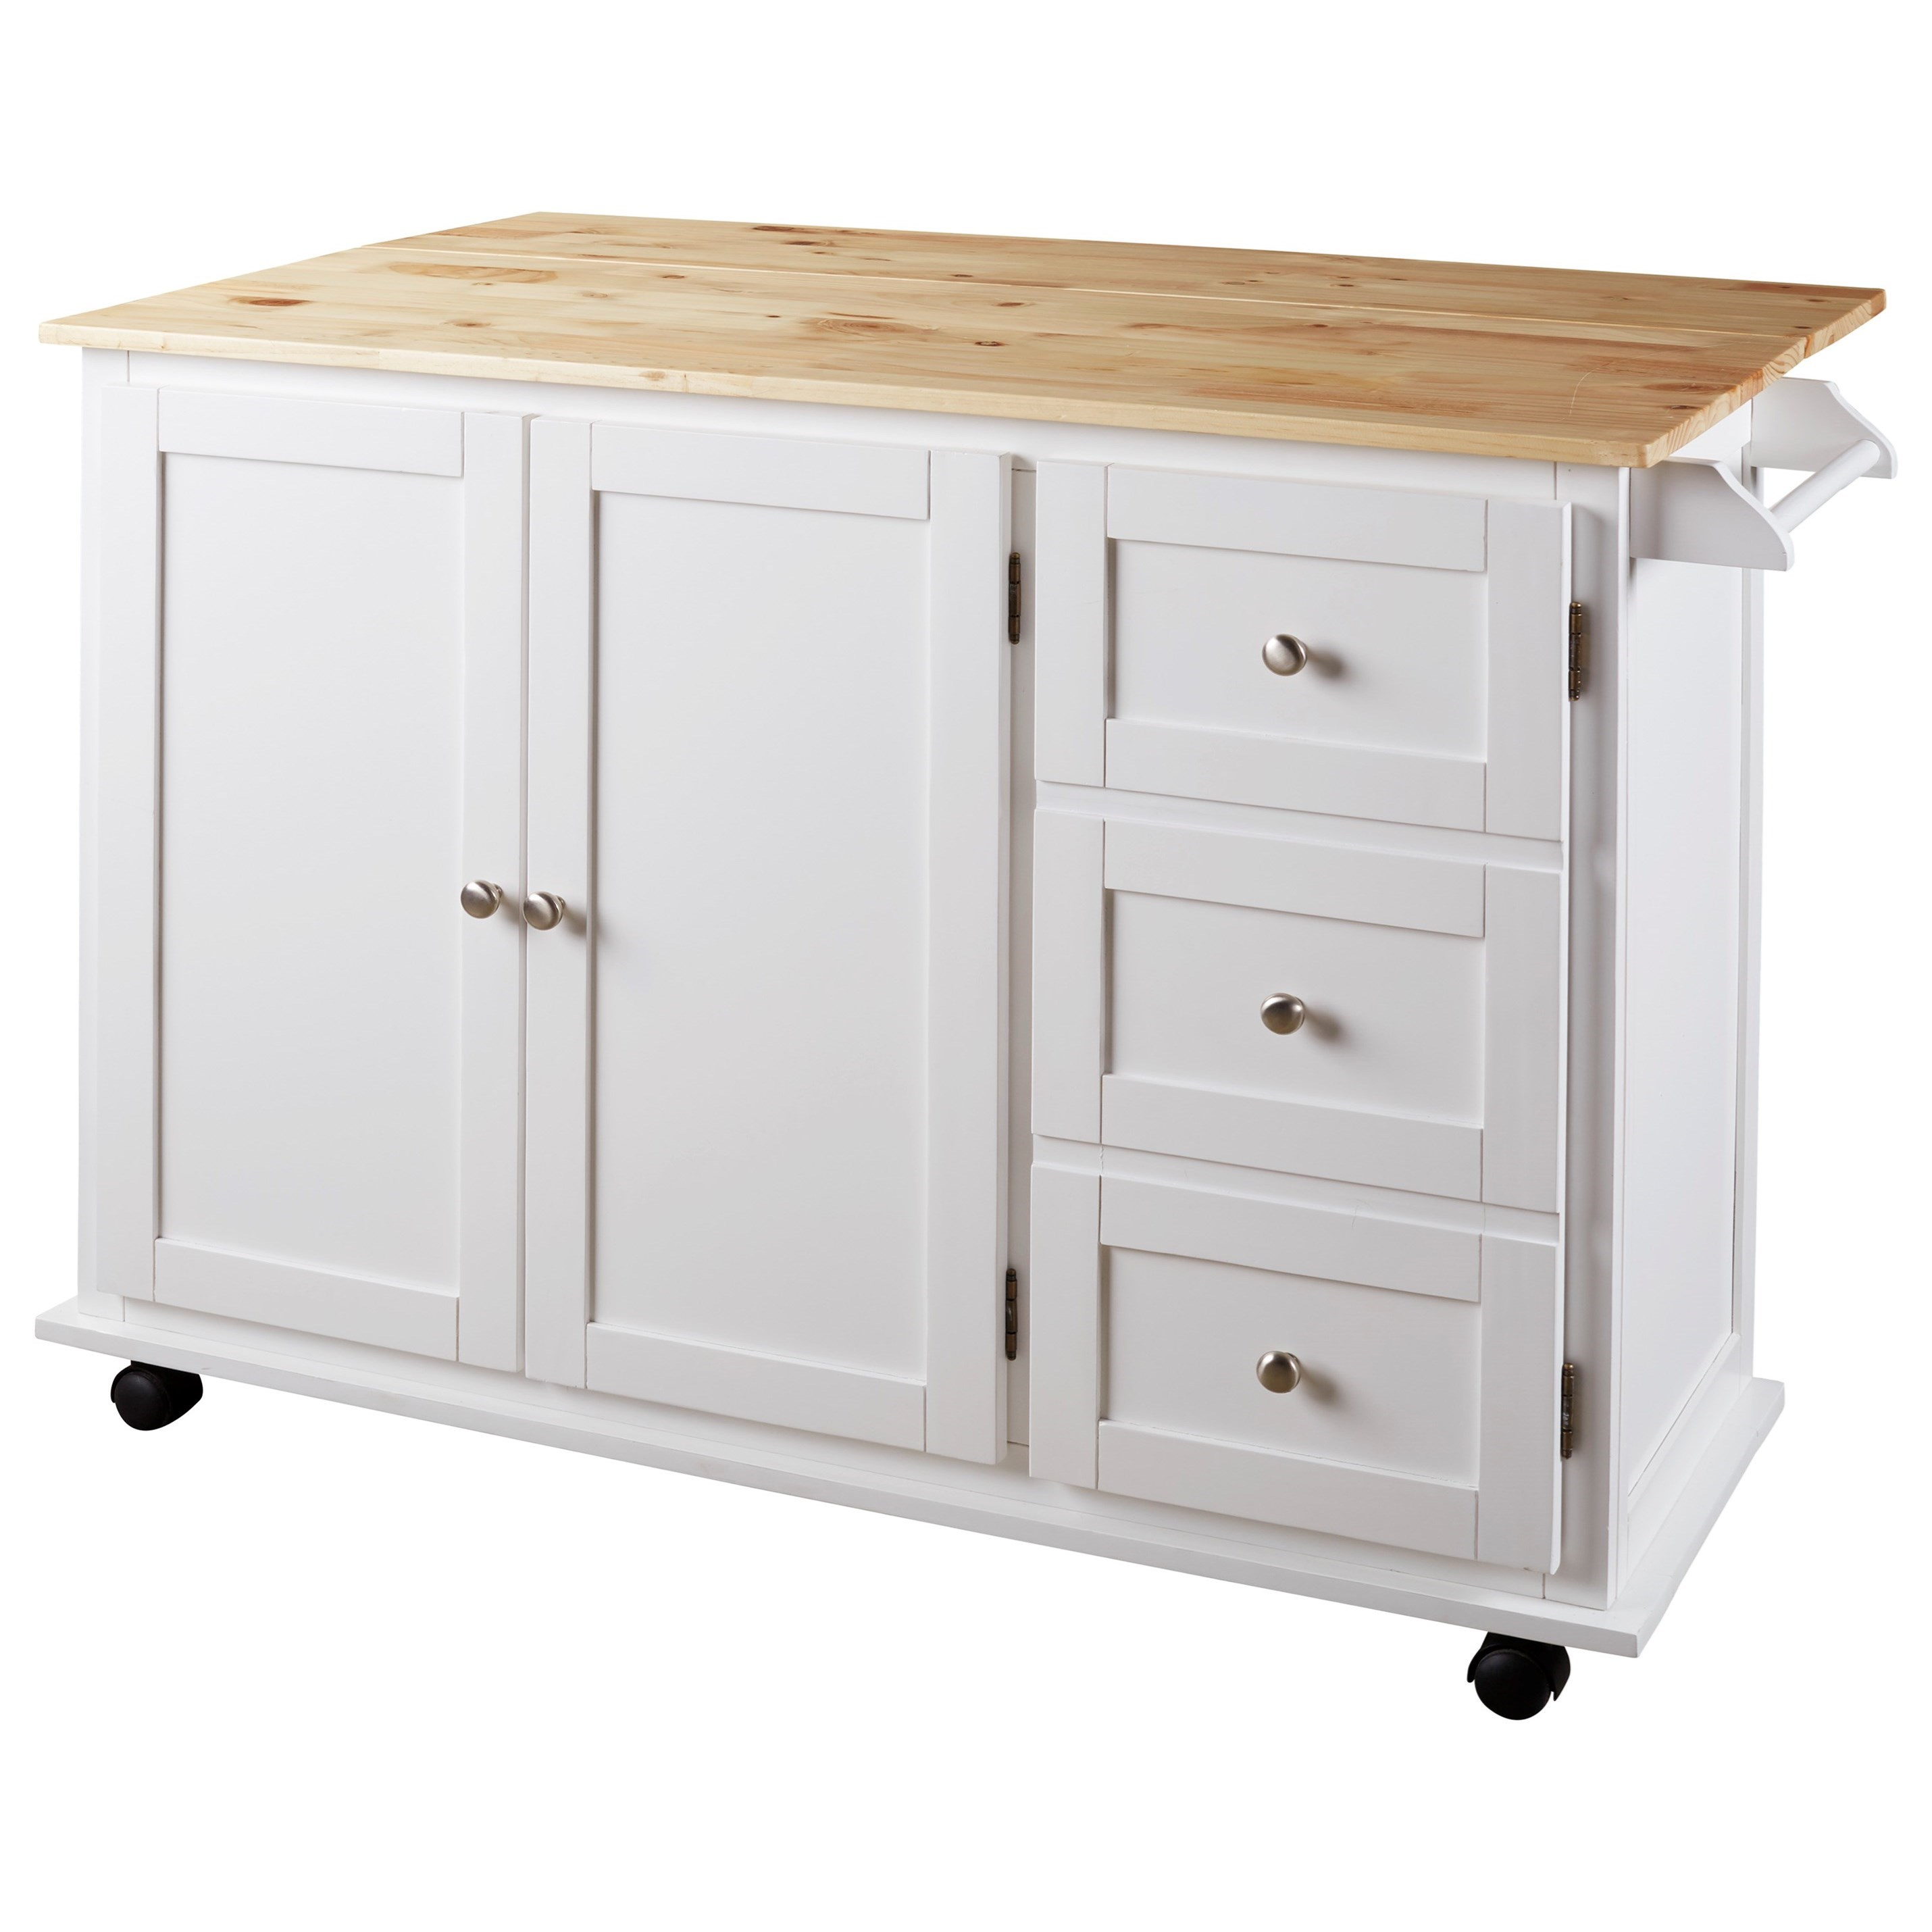 Ashley Signature Design Withurst D350 486 Two Tone Kitchen Cart